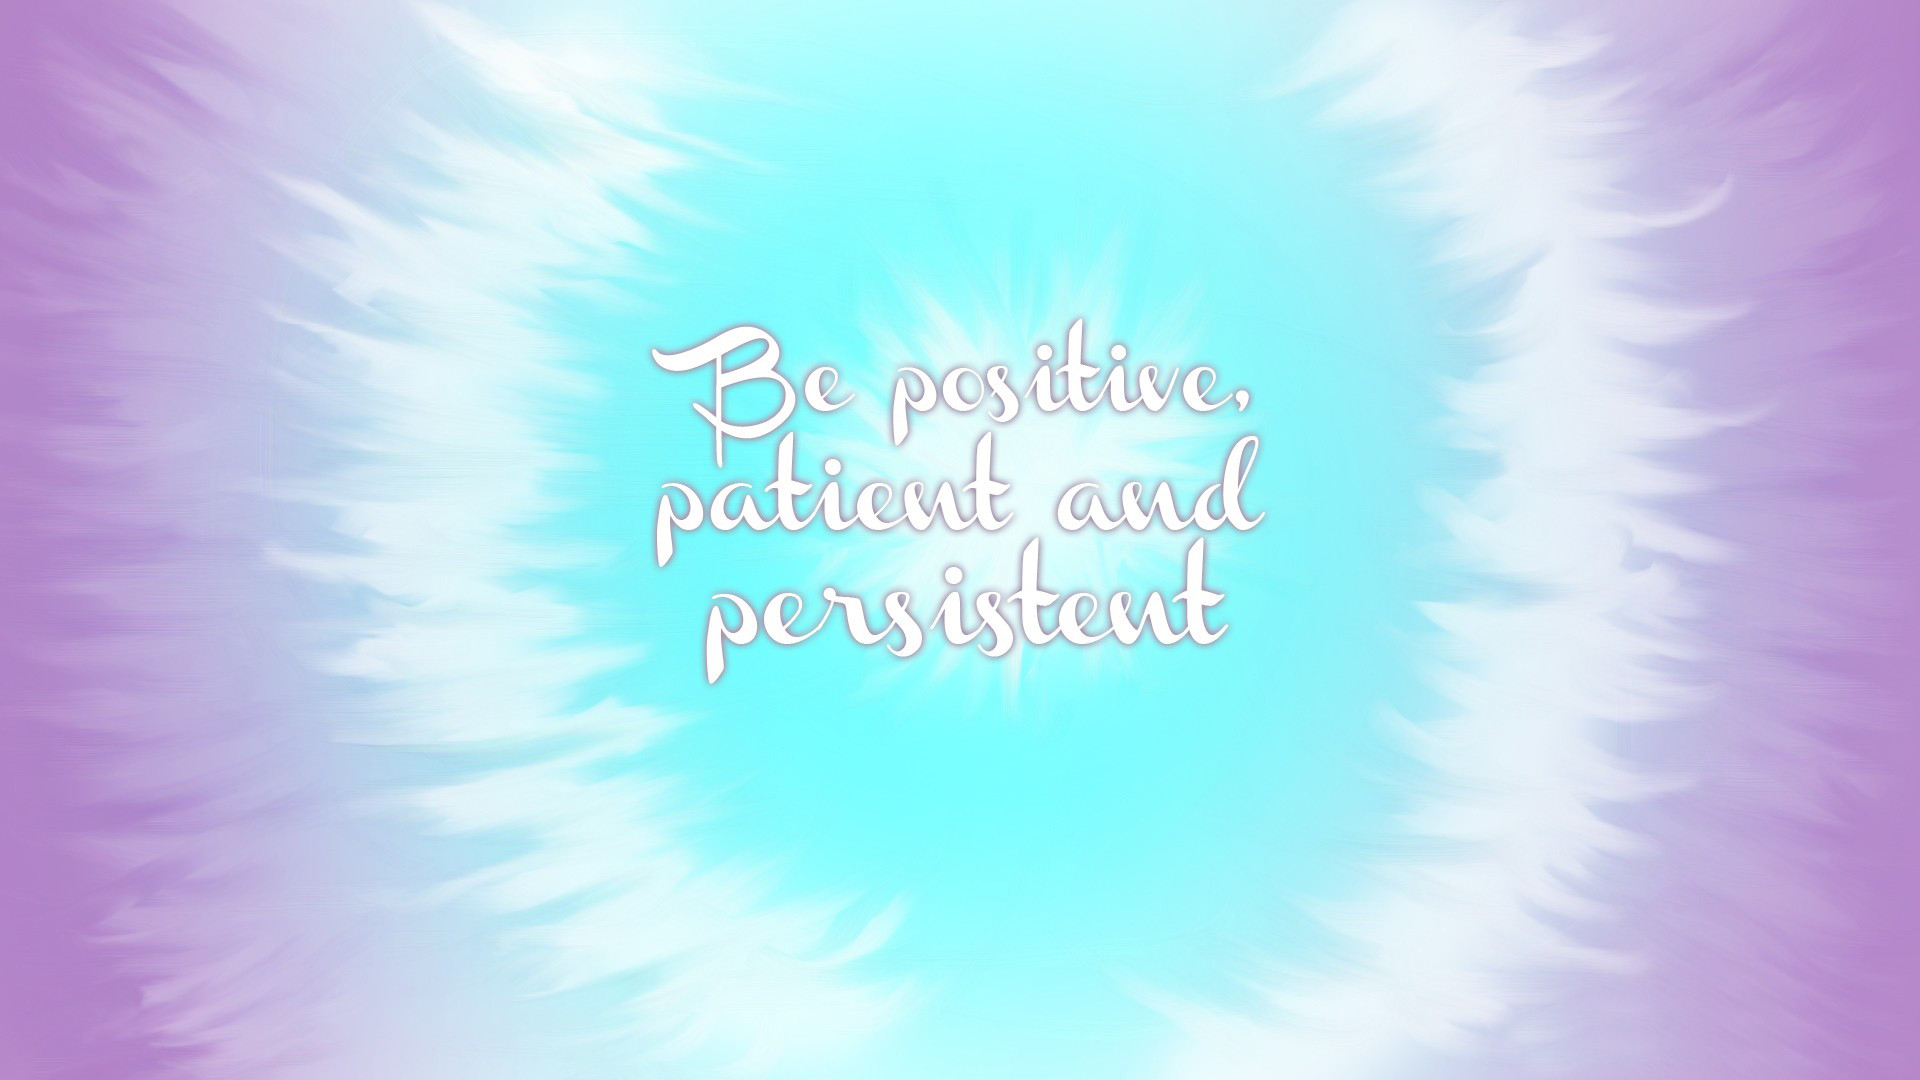 Positive vibes wallpaper 69 images - Good thinking wallpaper ...